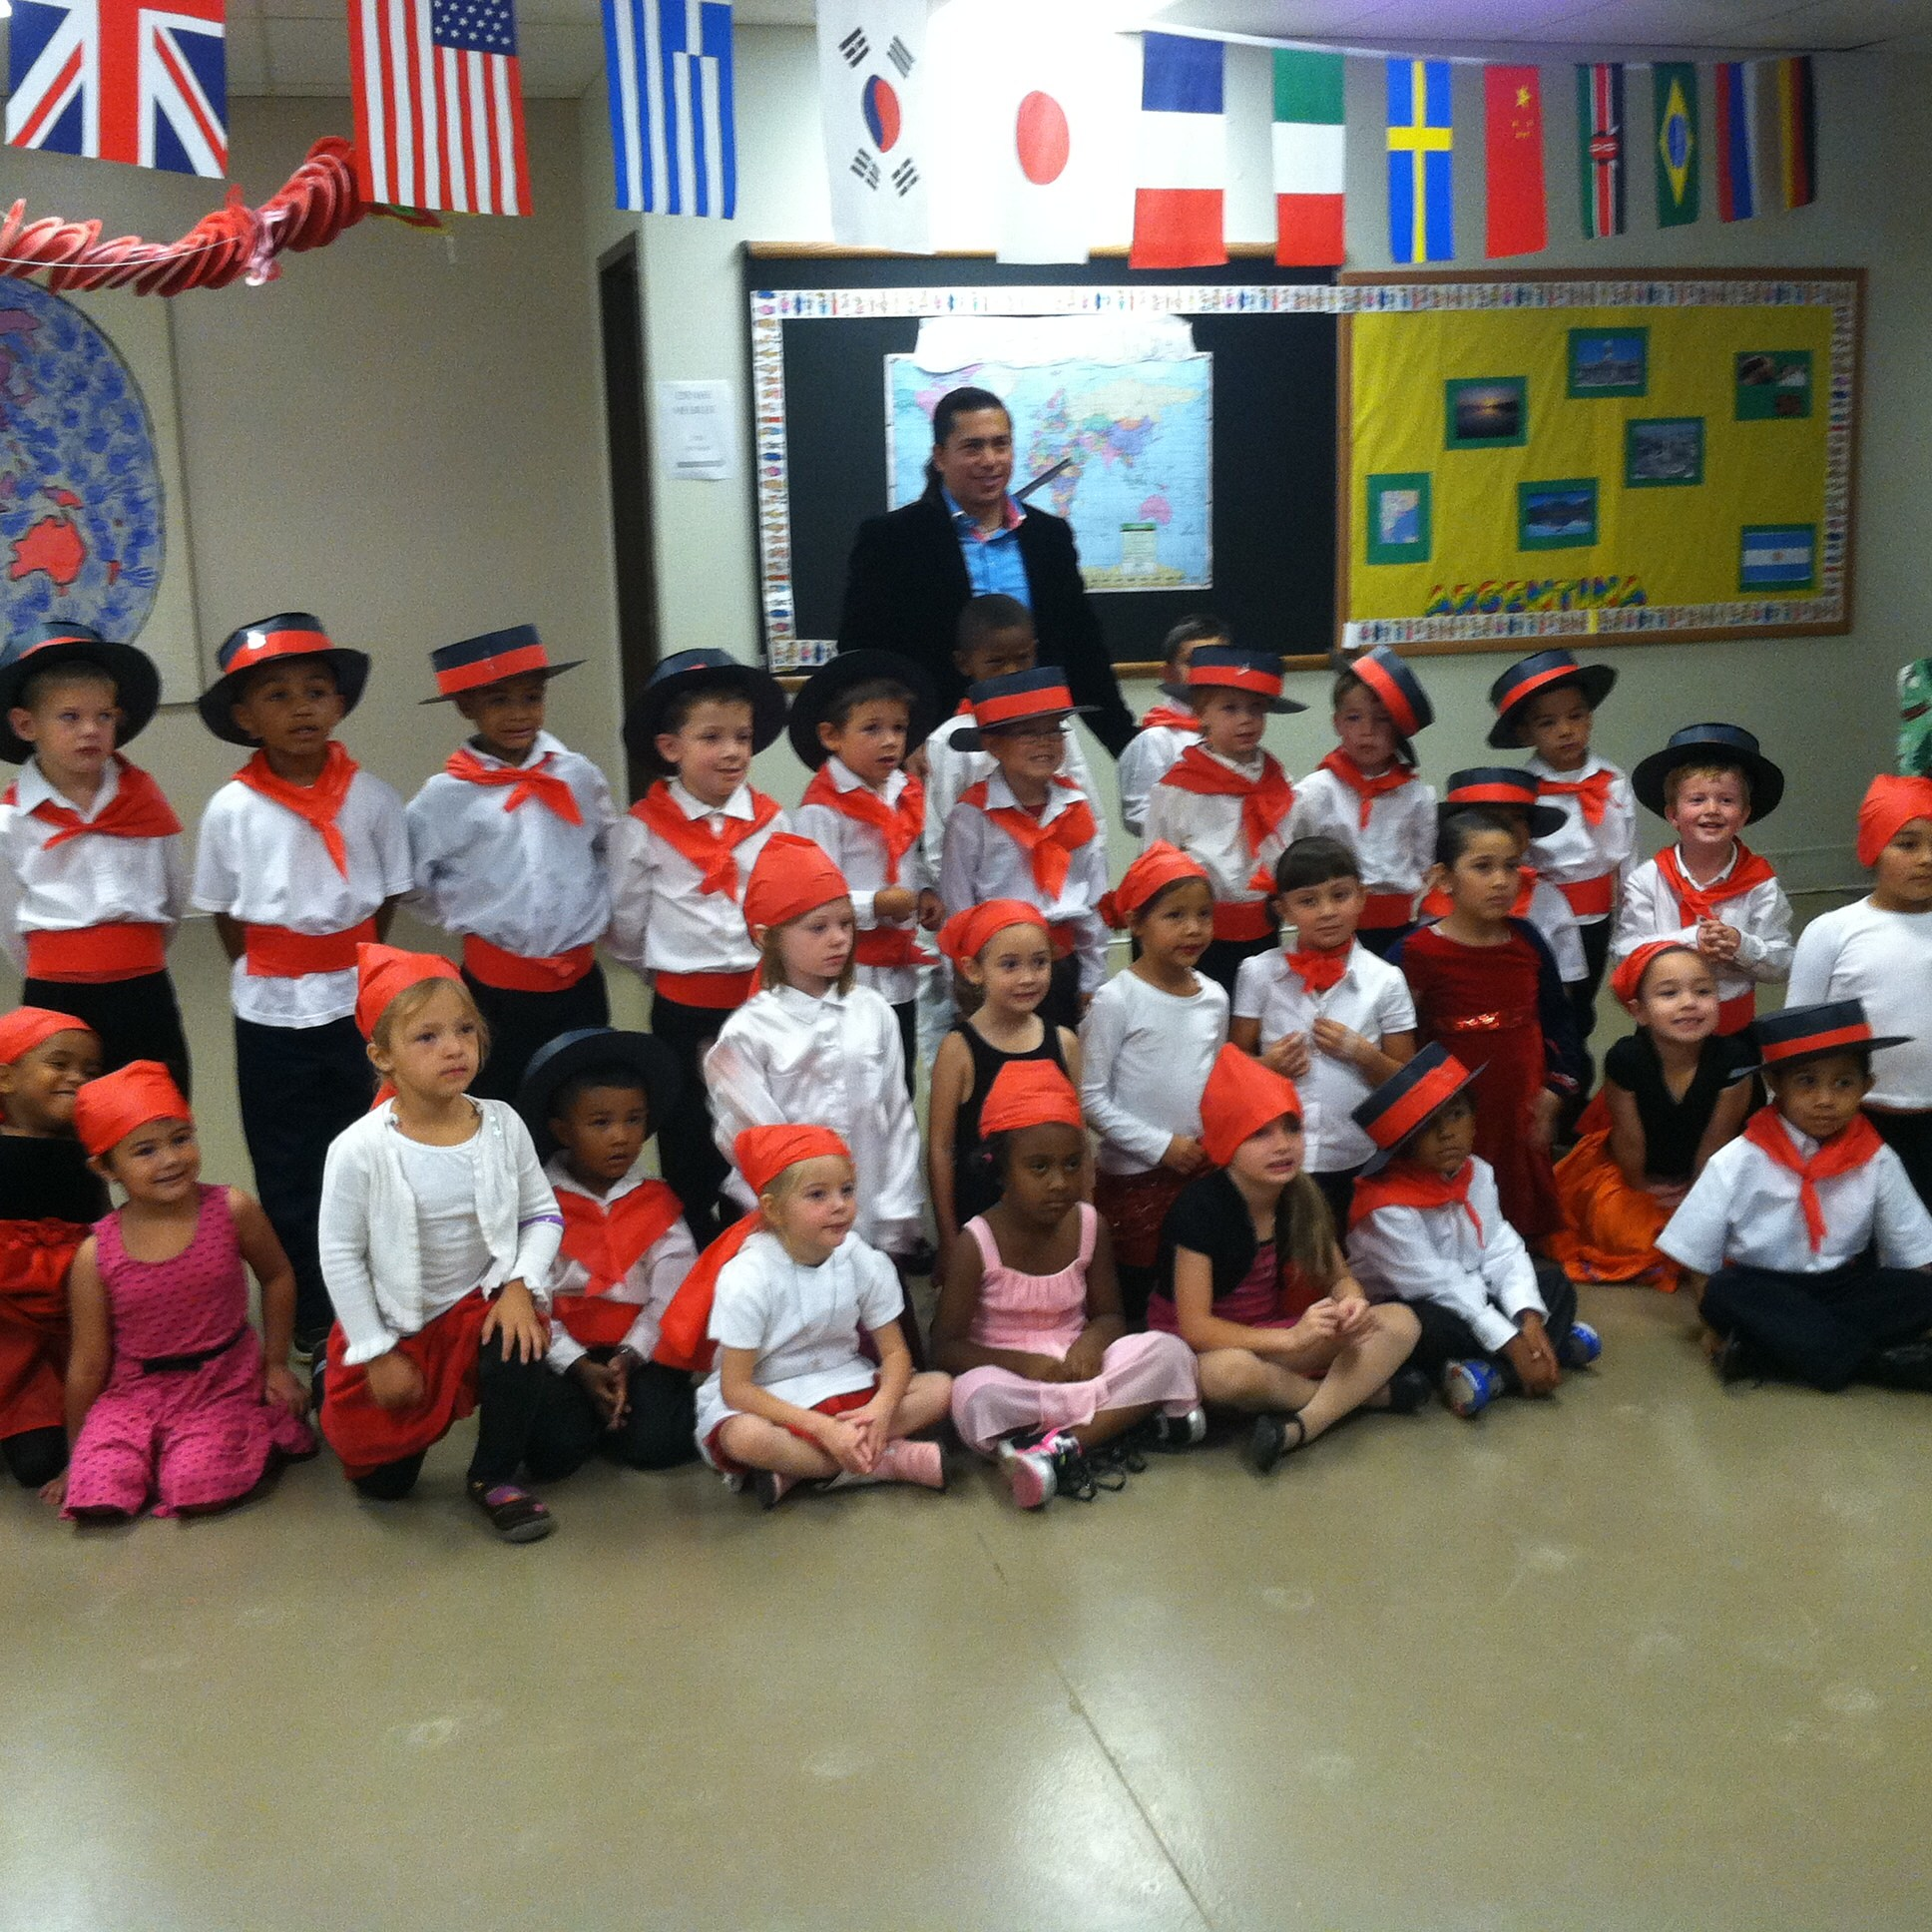 First grade girls and boys in traditional Spanish cultural costumes for Spanish Culture Night